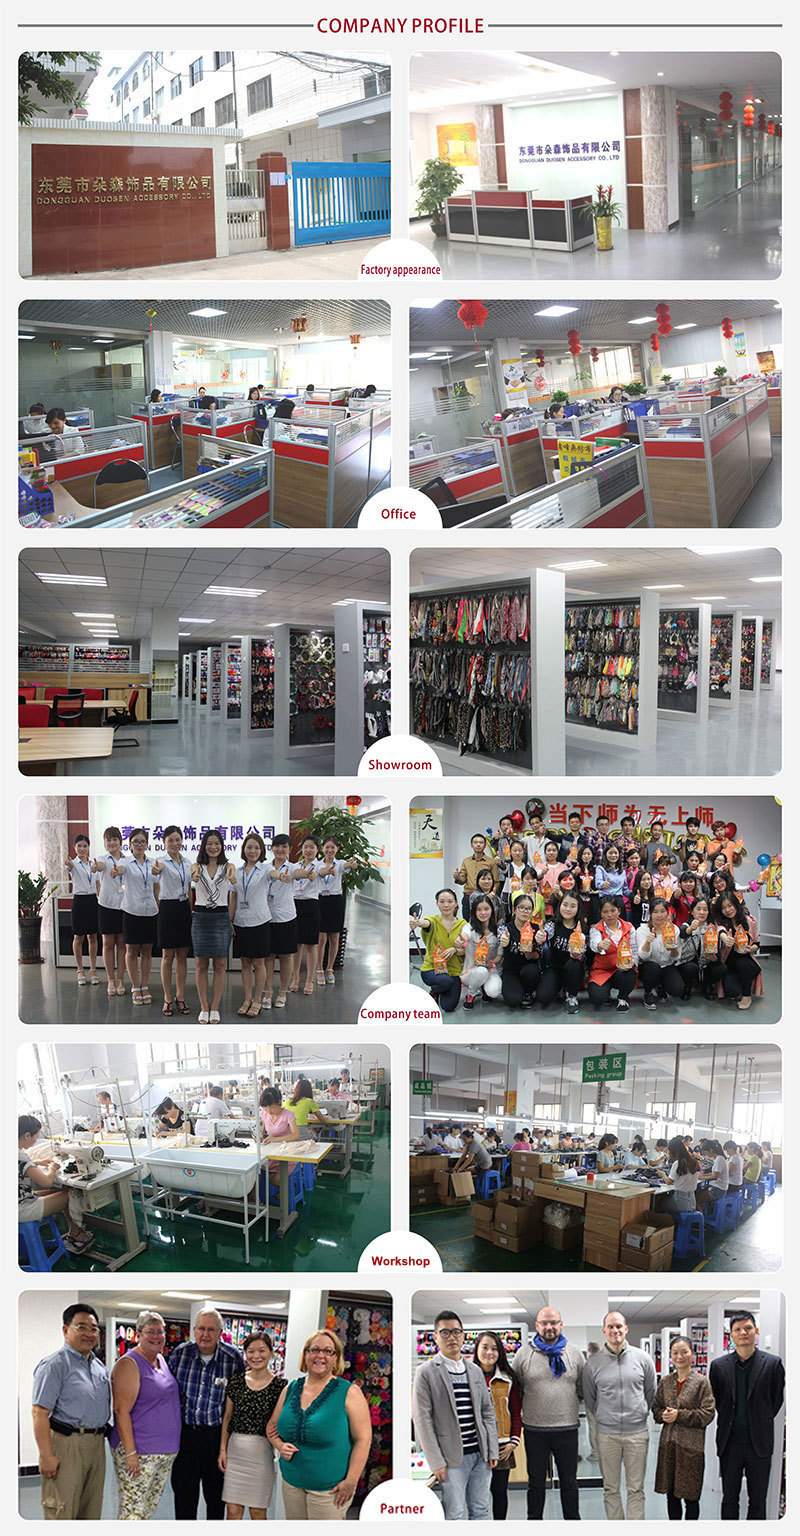 duosen hair accessory company is a manufacturer that has own factory with profetional R&D and work team,attracted numerous of customers to visit our large sample showroom